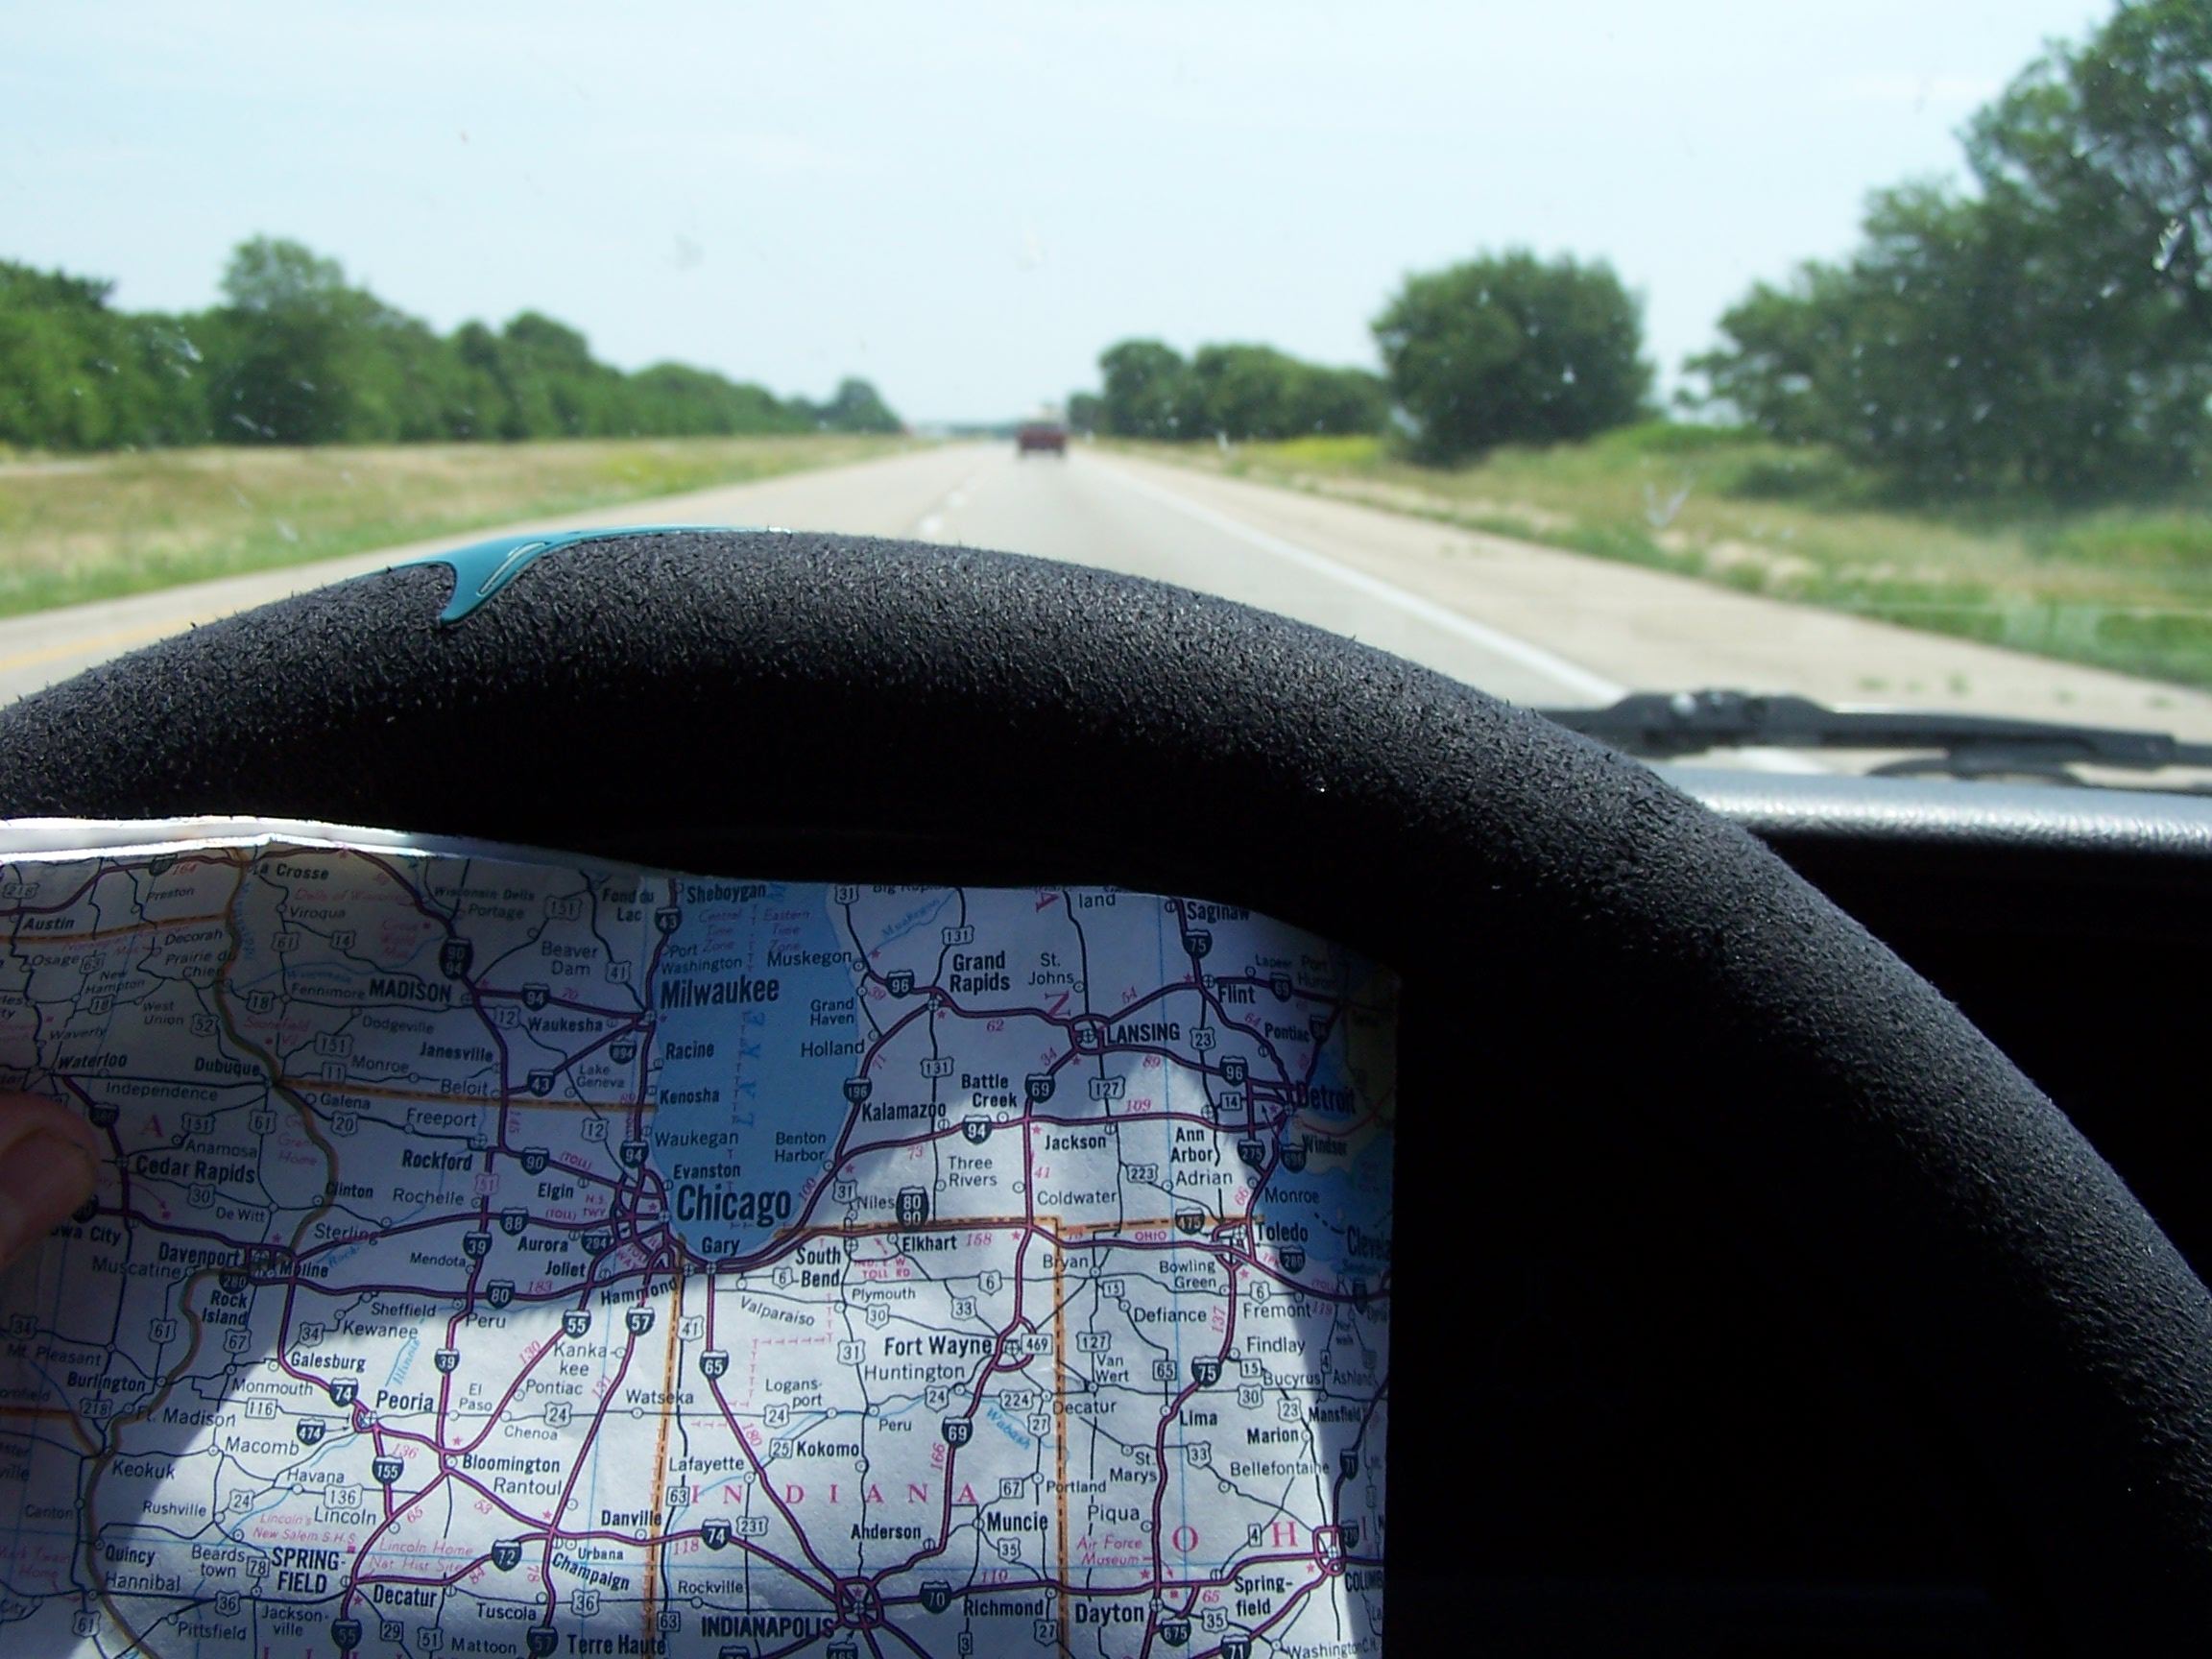 From 'Are We There Yet' To Taking The Wheel: Teaching Your Teen How To Deal With Disaster On The Road